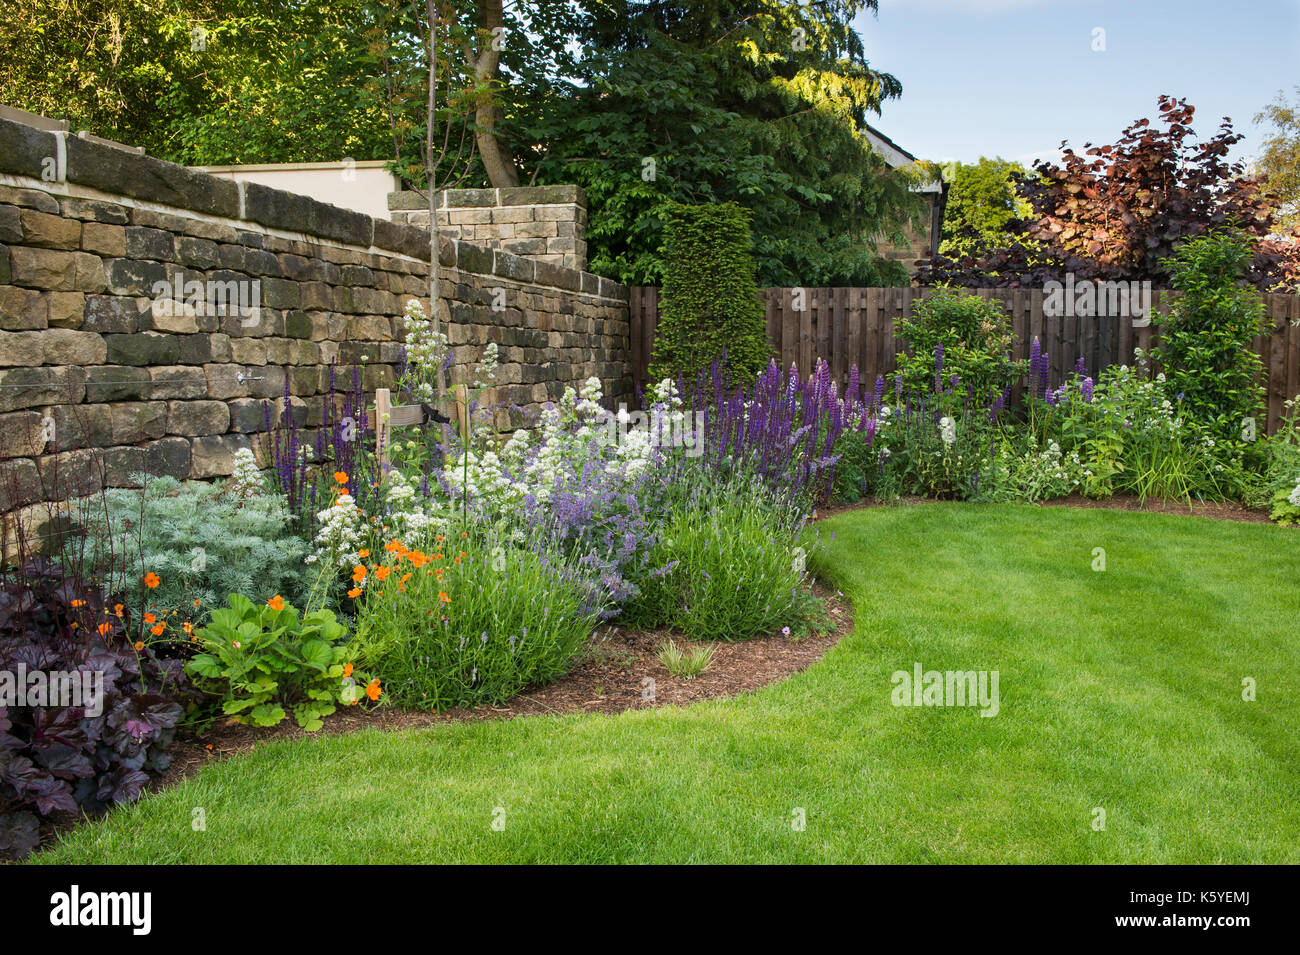 Corner of beautiful, private, traditional, landscaped, country garden, Yorkshire, England, UK - summer flowering plants bloom on herbaceous border. - Stock Image